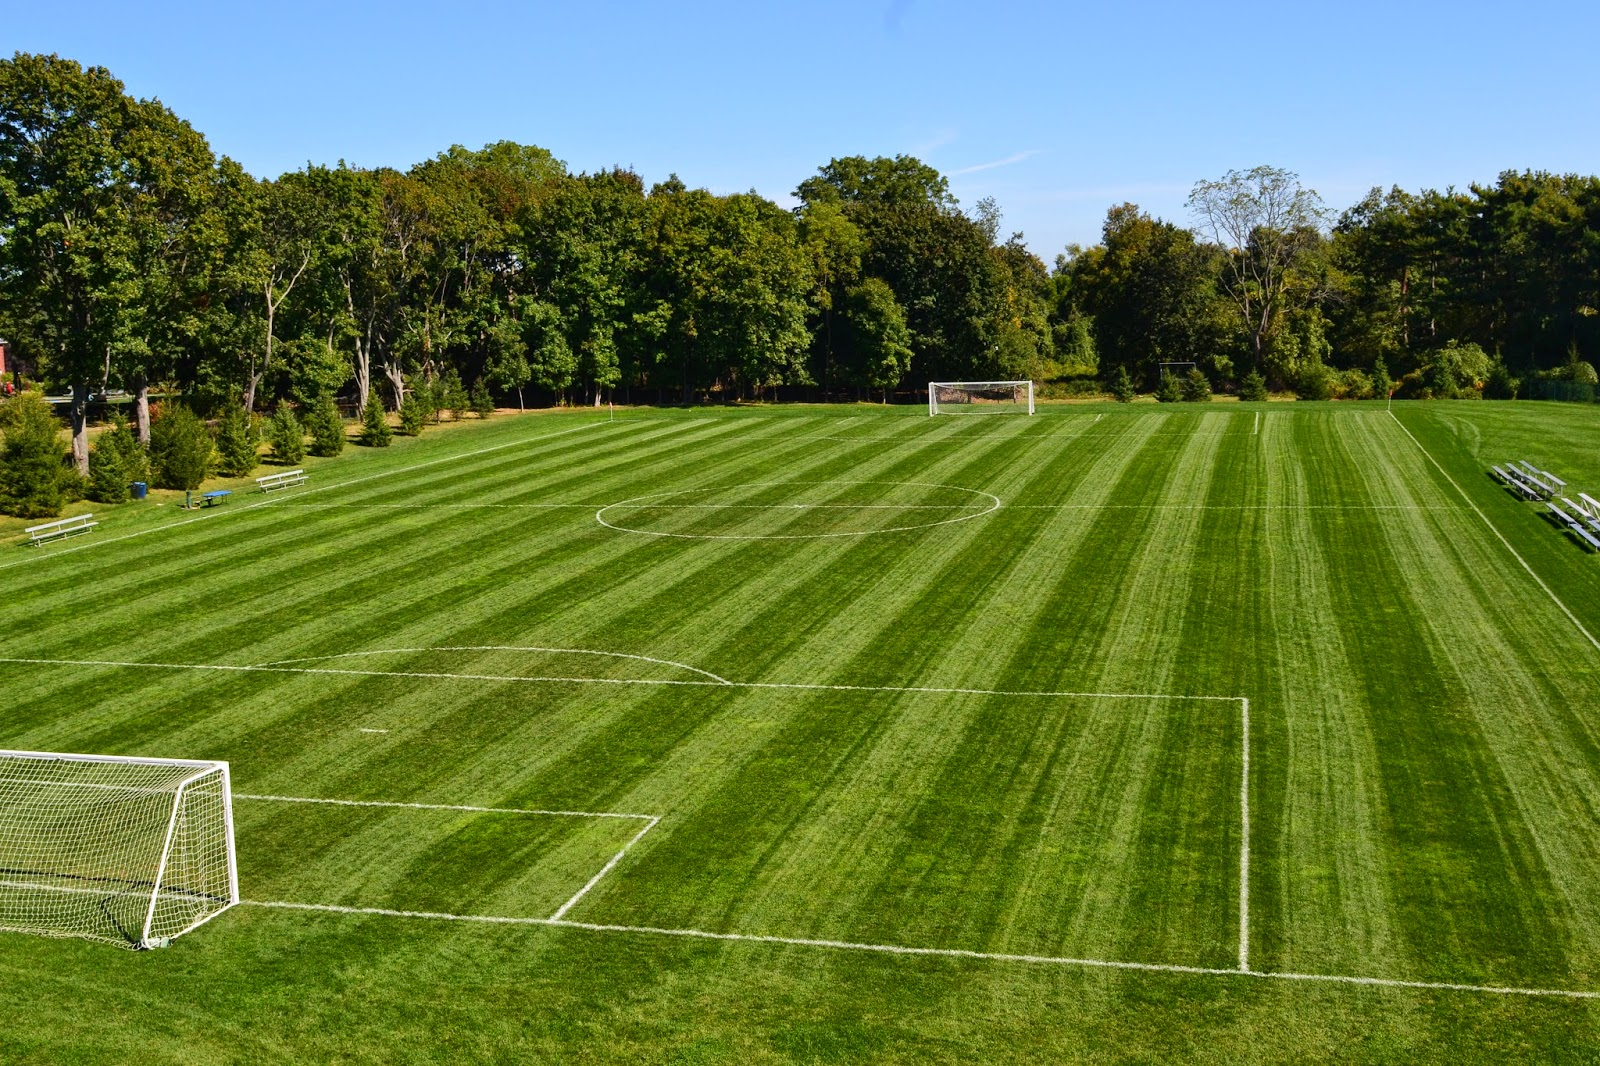 Soccer Field In My Backyard : Going Organic? with Greens Farms Academy in Westport, Conn